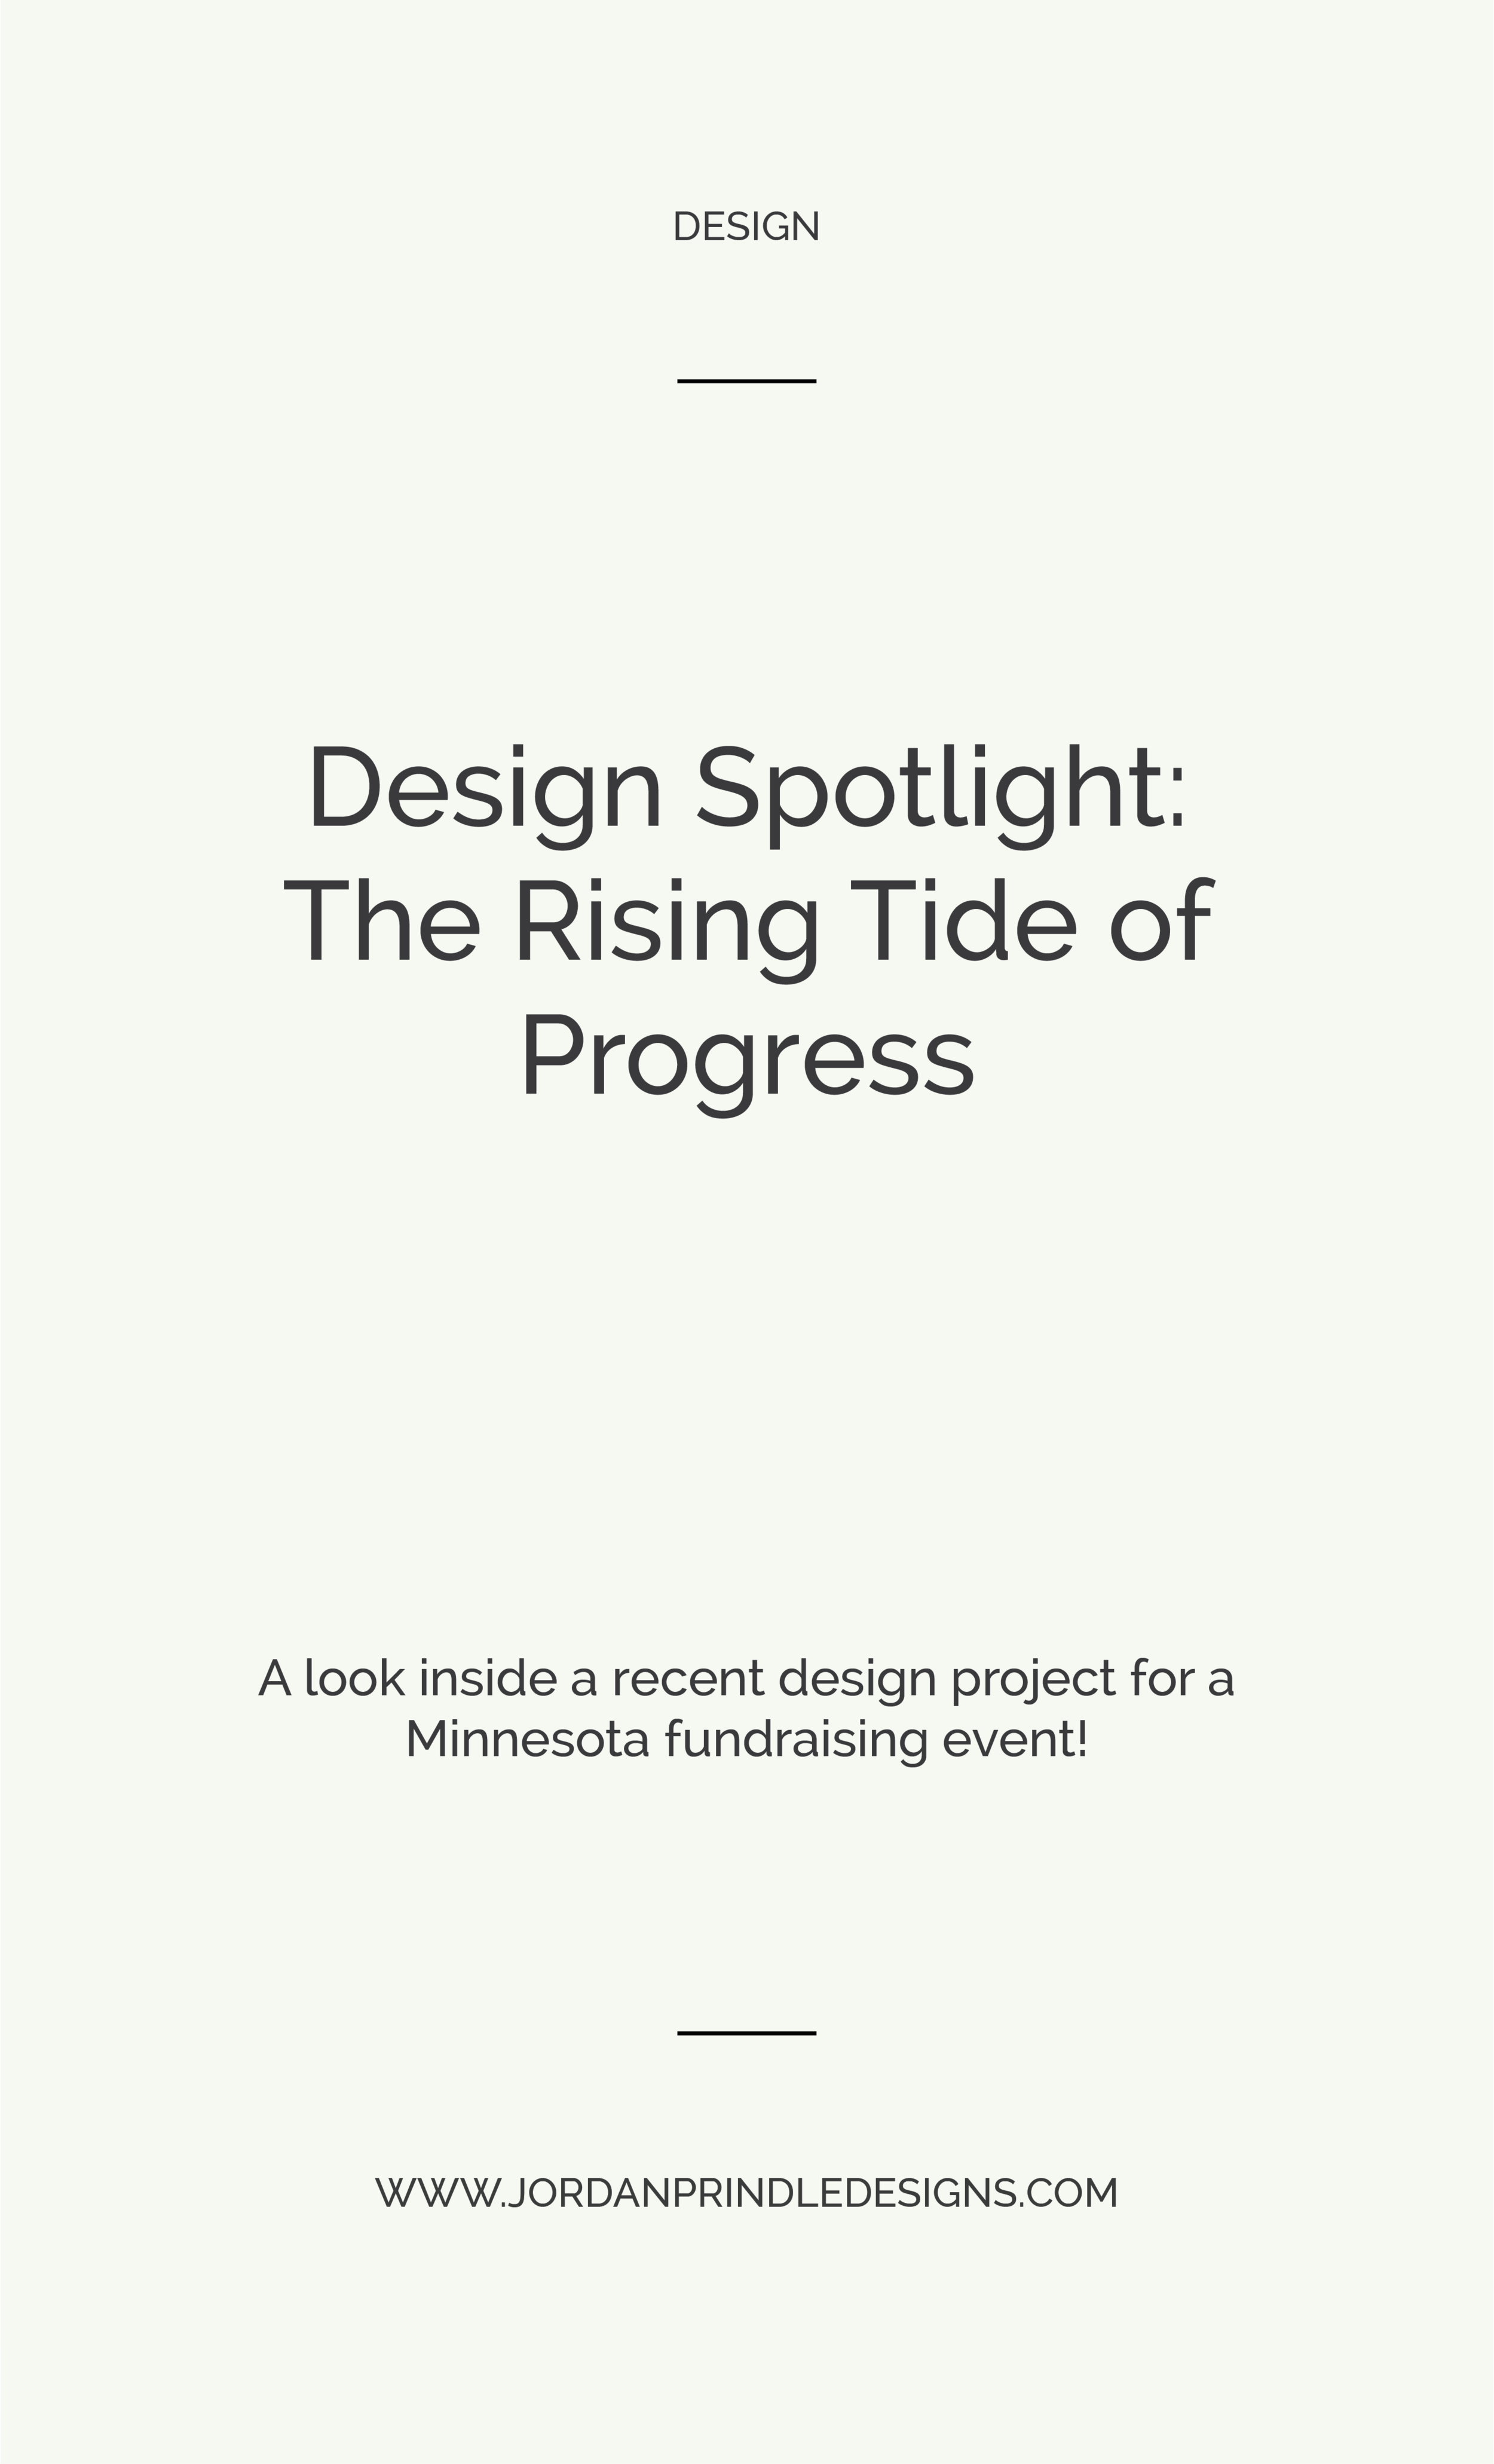 Design Spotlight: The Rising Tide of Progress | I recently designed a #logo and #collateral for a Minnesota fundraiser. Read about my #designprocess at www.jordanprindledesigns.com #graphicdesign #designtips #branddesign